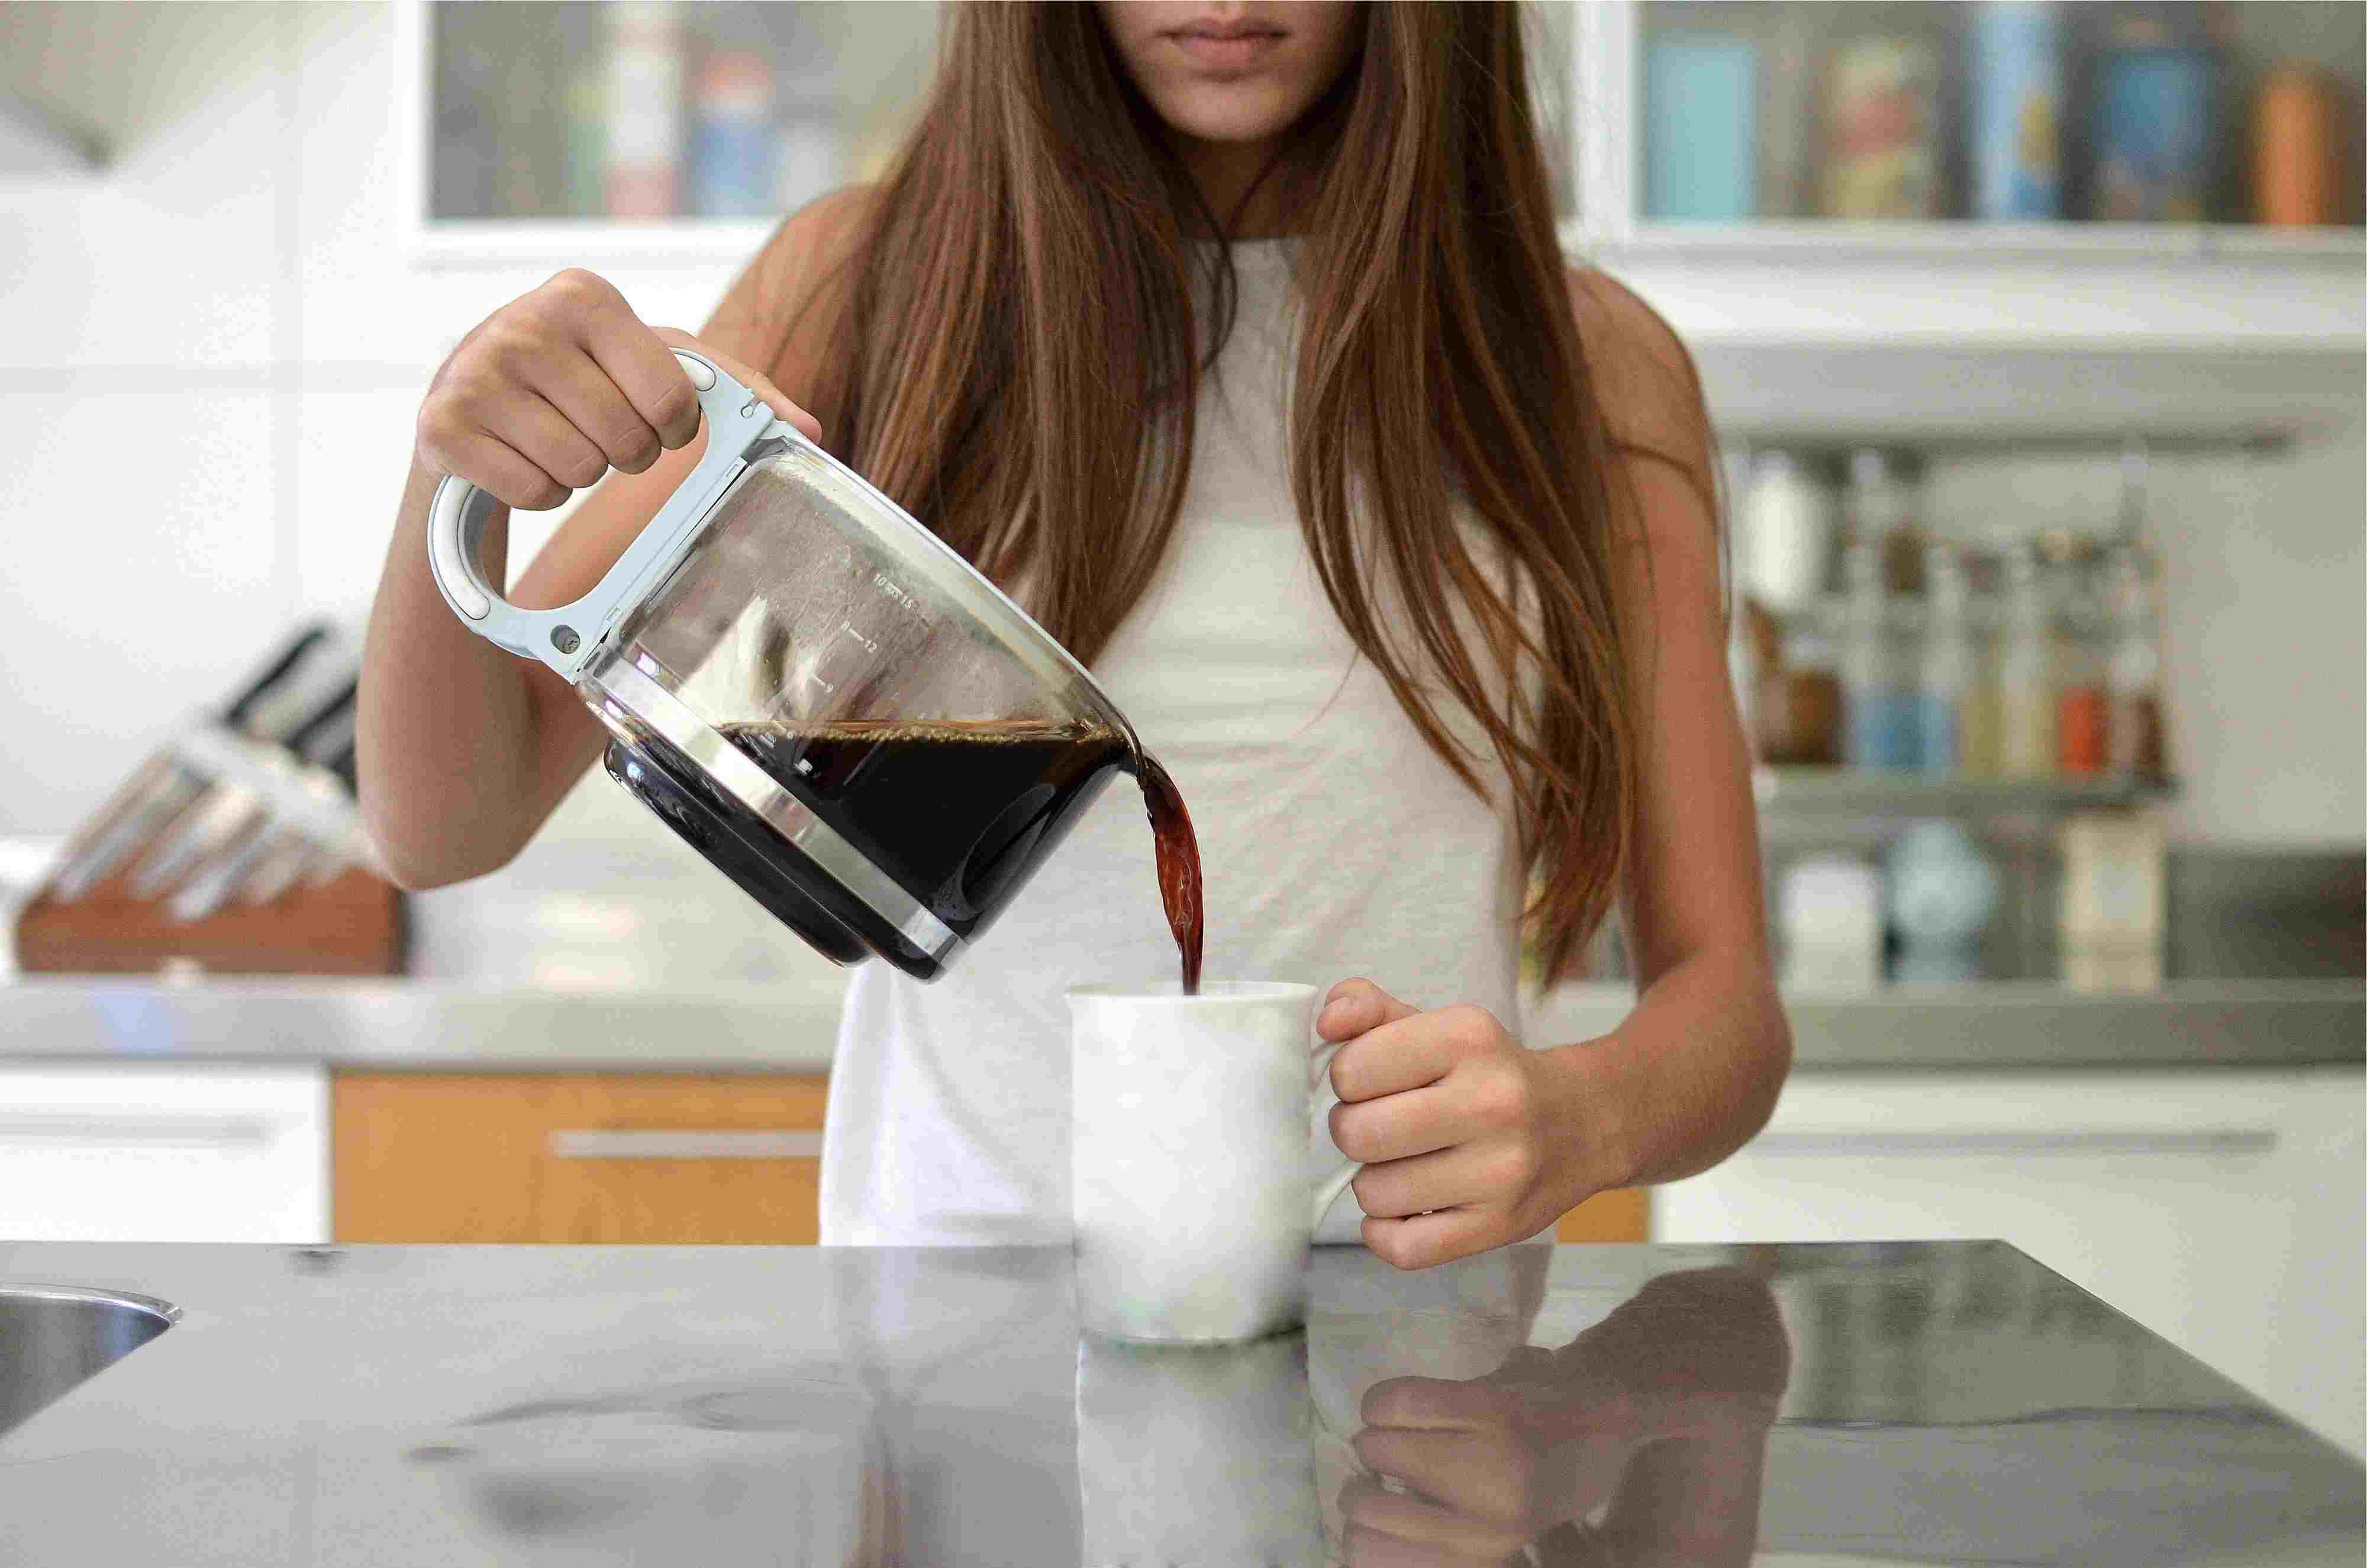 Girl pouring a cup of coffee in the kitchen